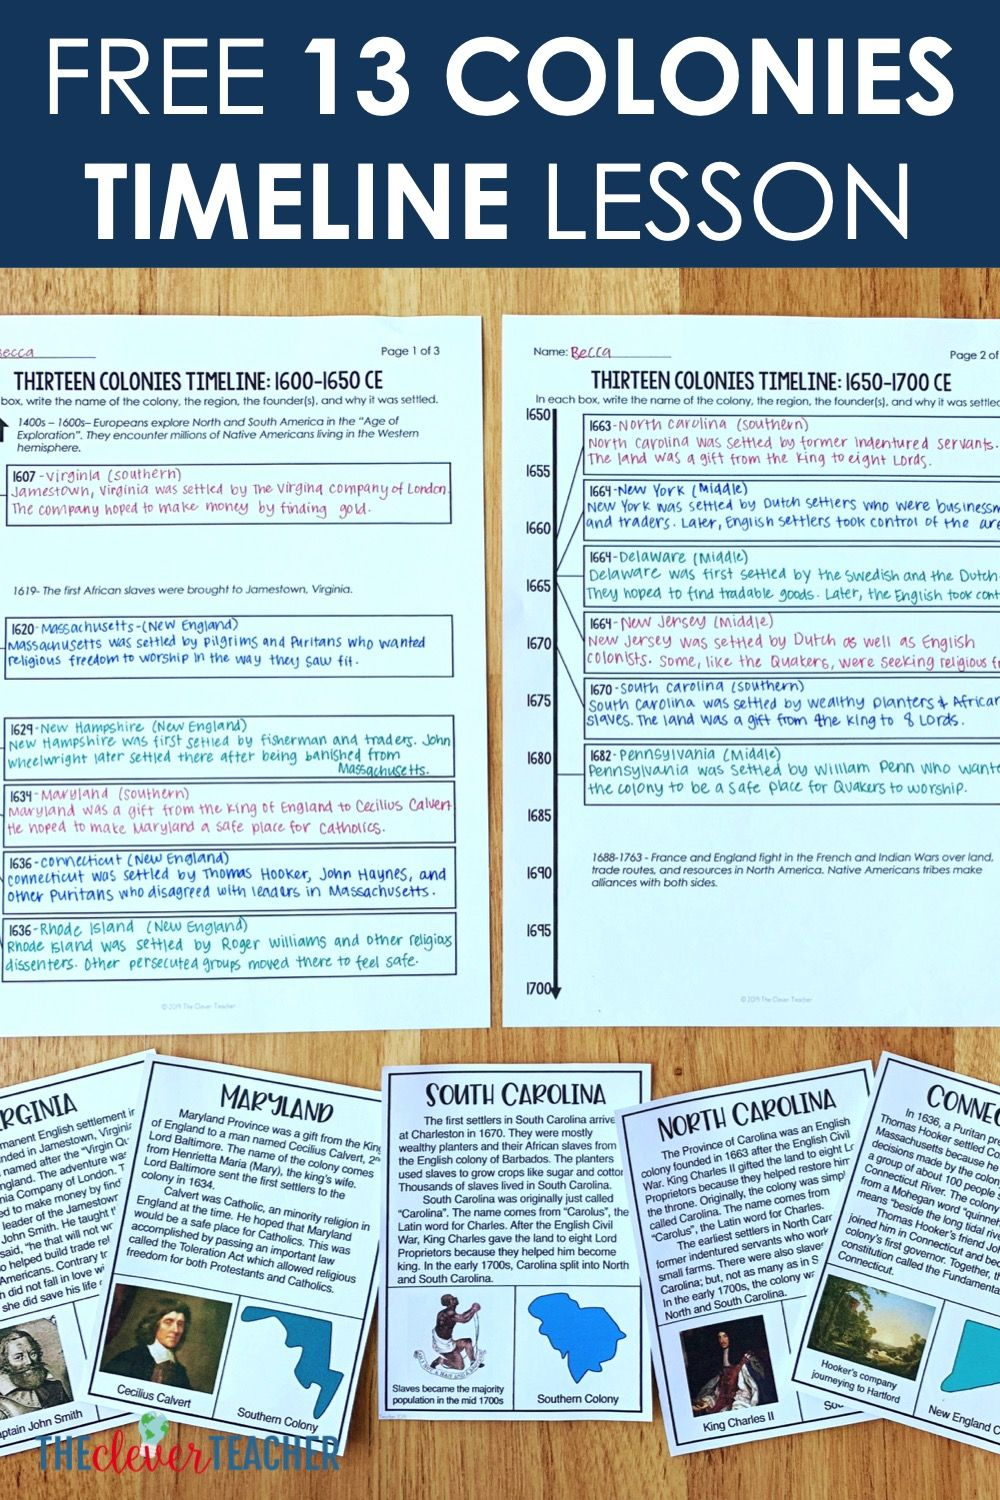 medium resolution of Free 13 Colonies Timeline Lesson   Education middle school